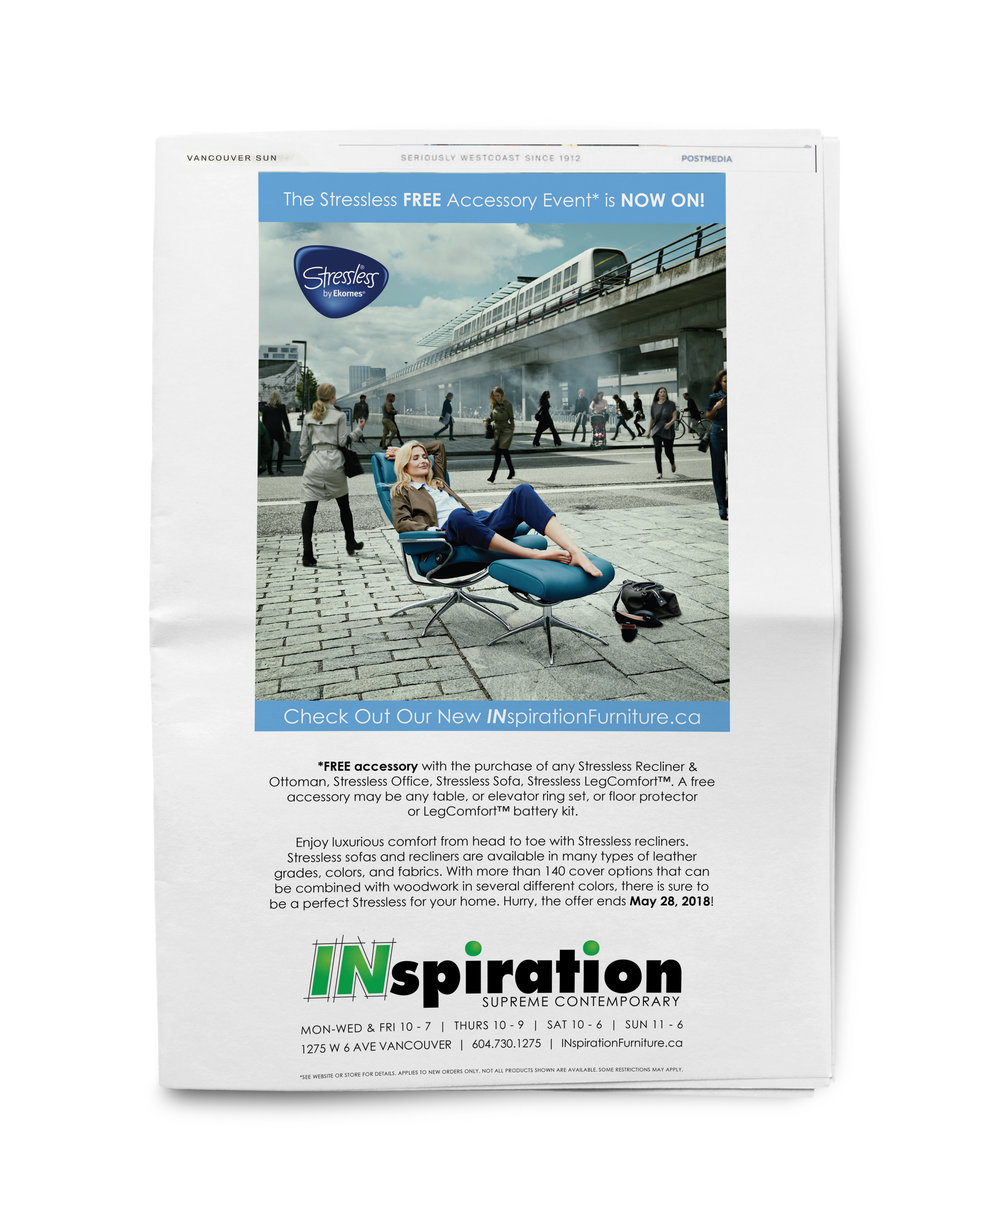 INspiration_Vancouver_Newspaper13.jpg